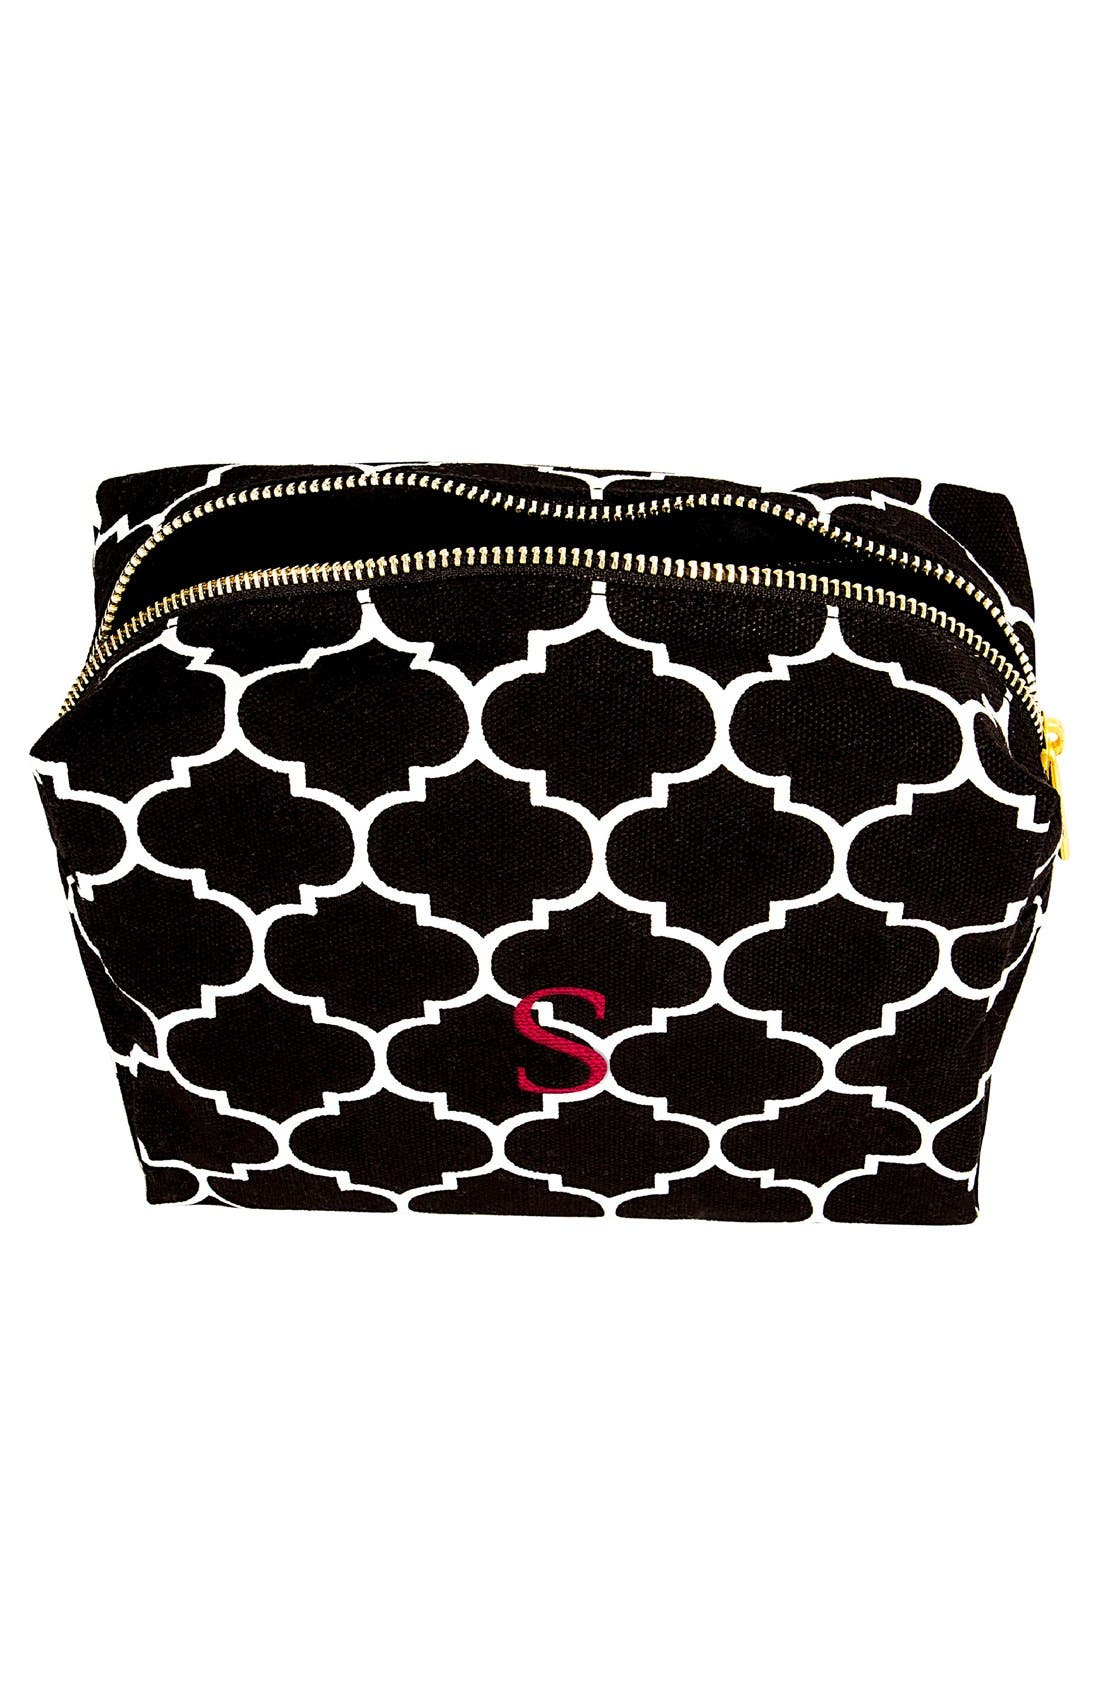 Monogram Cosmetics Bag,                             Alternate thumbnail 4, color,                             BLACK